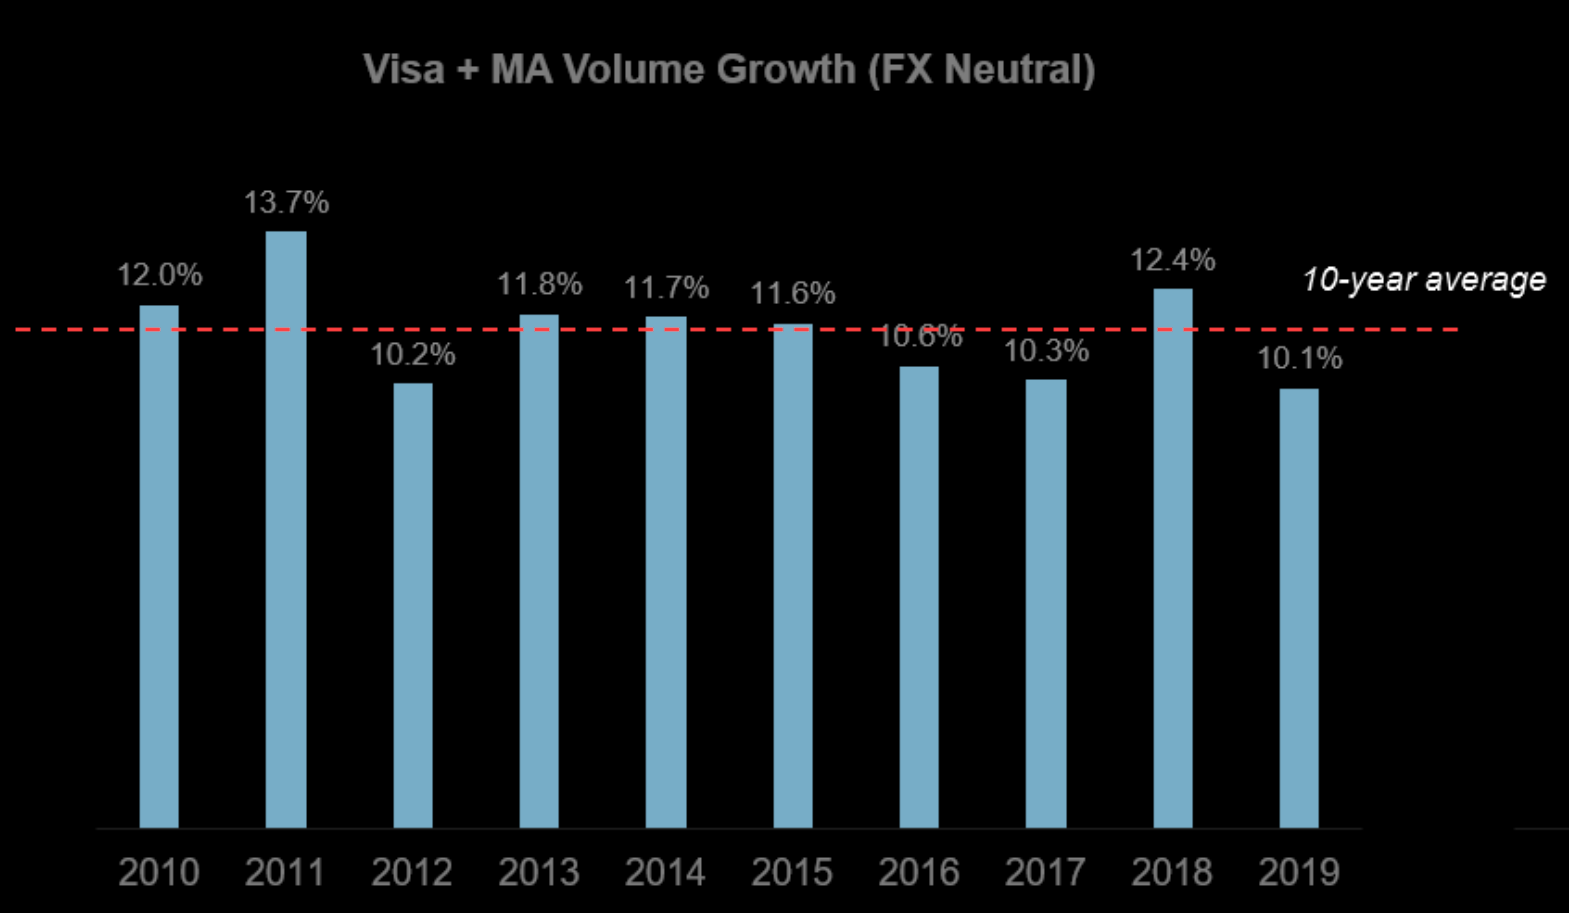 Visa and Mastercard volume growth is like clockwork